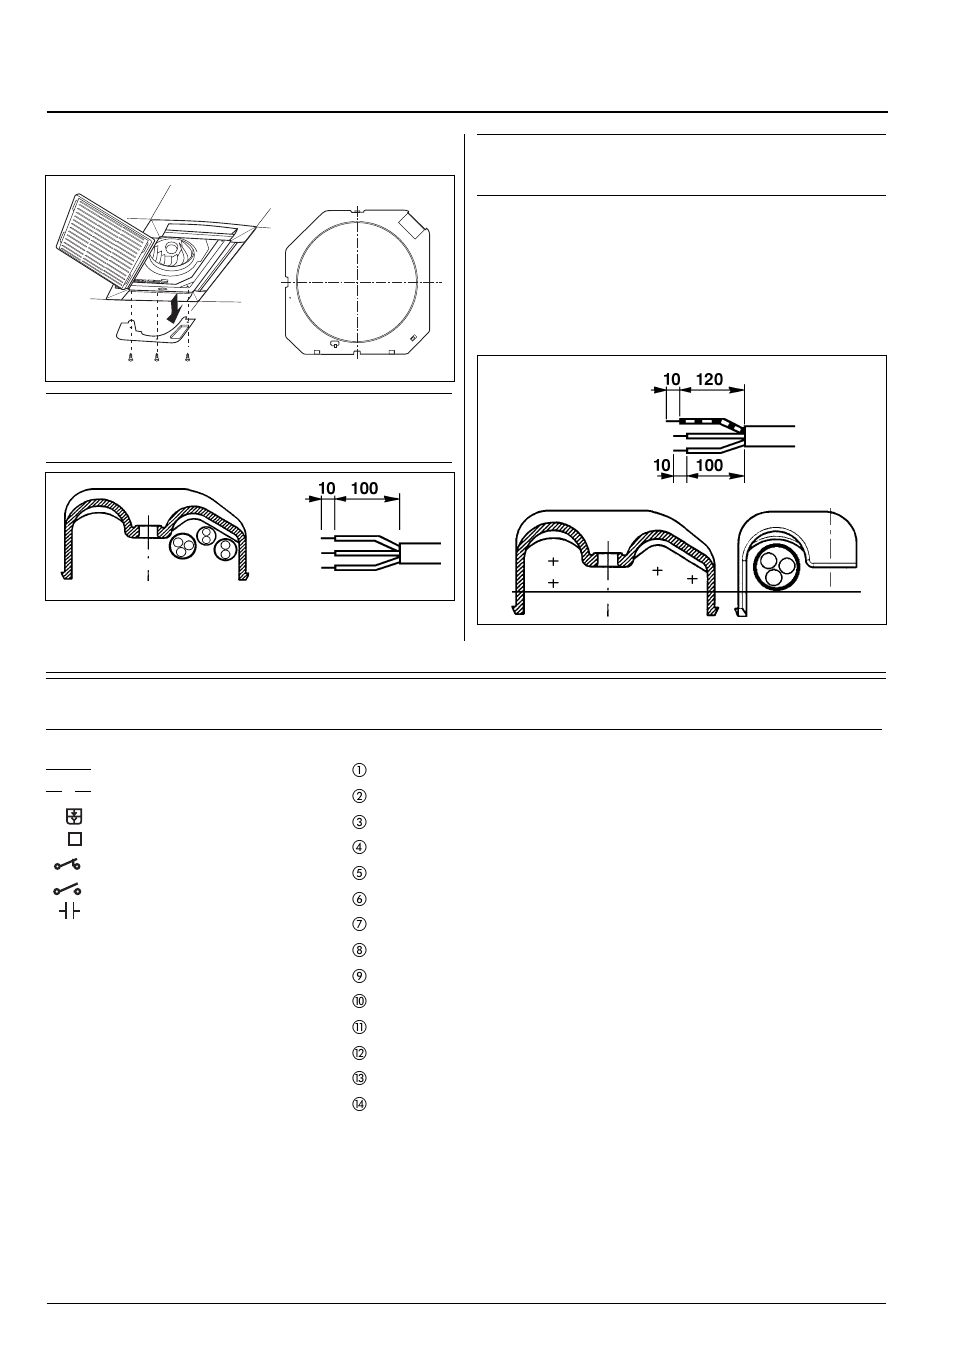 carrier 42gw page13 42 gw, wiring diagram legend electrical connections, connections carrier wiring diagram at soozxer.org